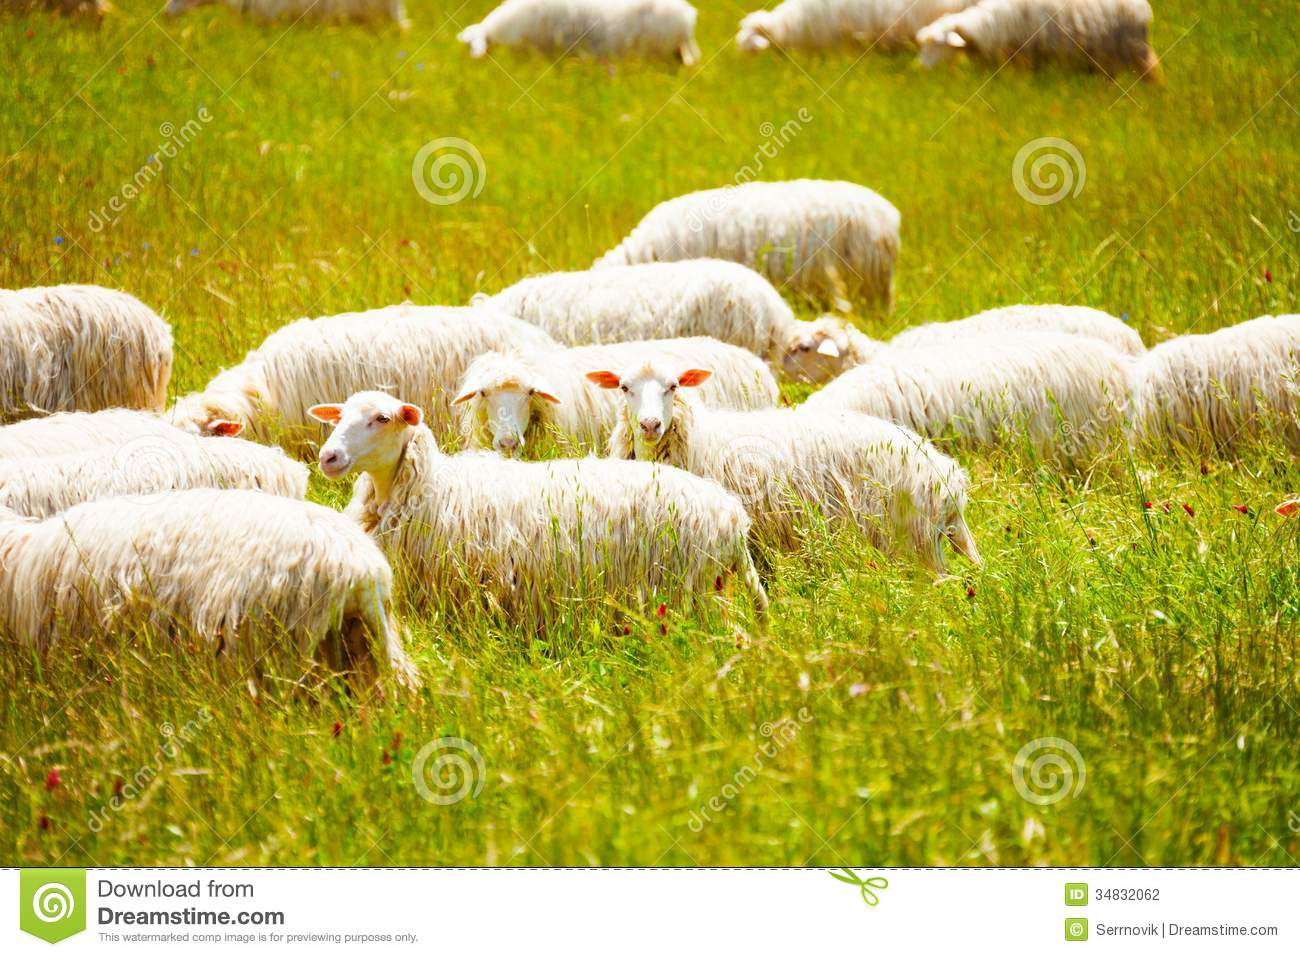 Sheep Herd Farm On Green Gras In Scotland 2 Stock Photo - Image ...